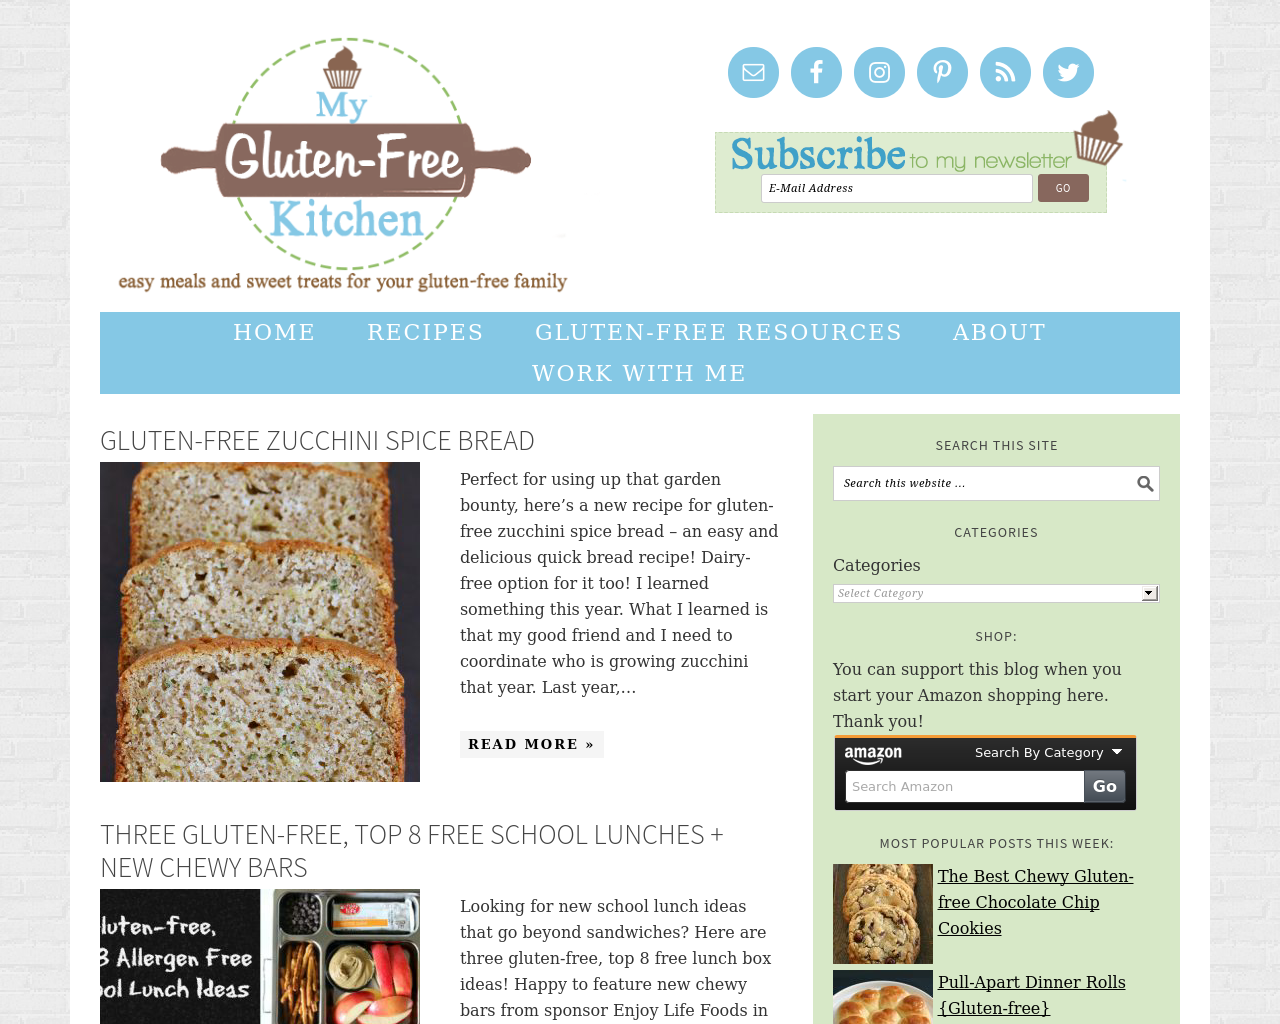 My-GLUTEN-FREE-Kitchen-Advertising-Reviews-Pricing